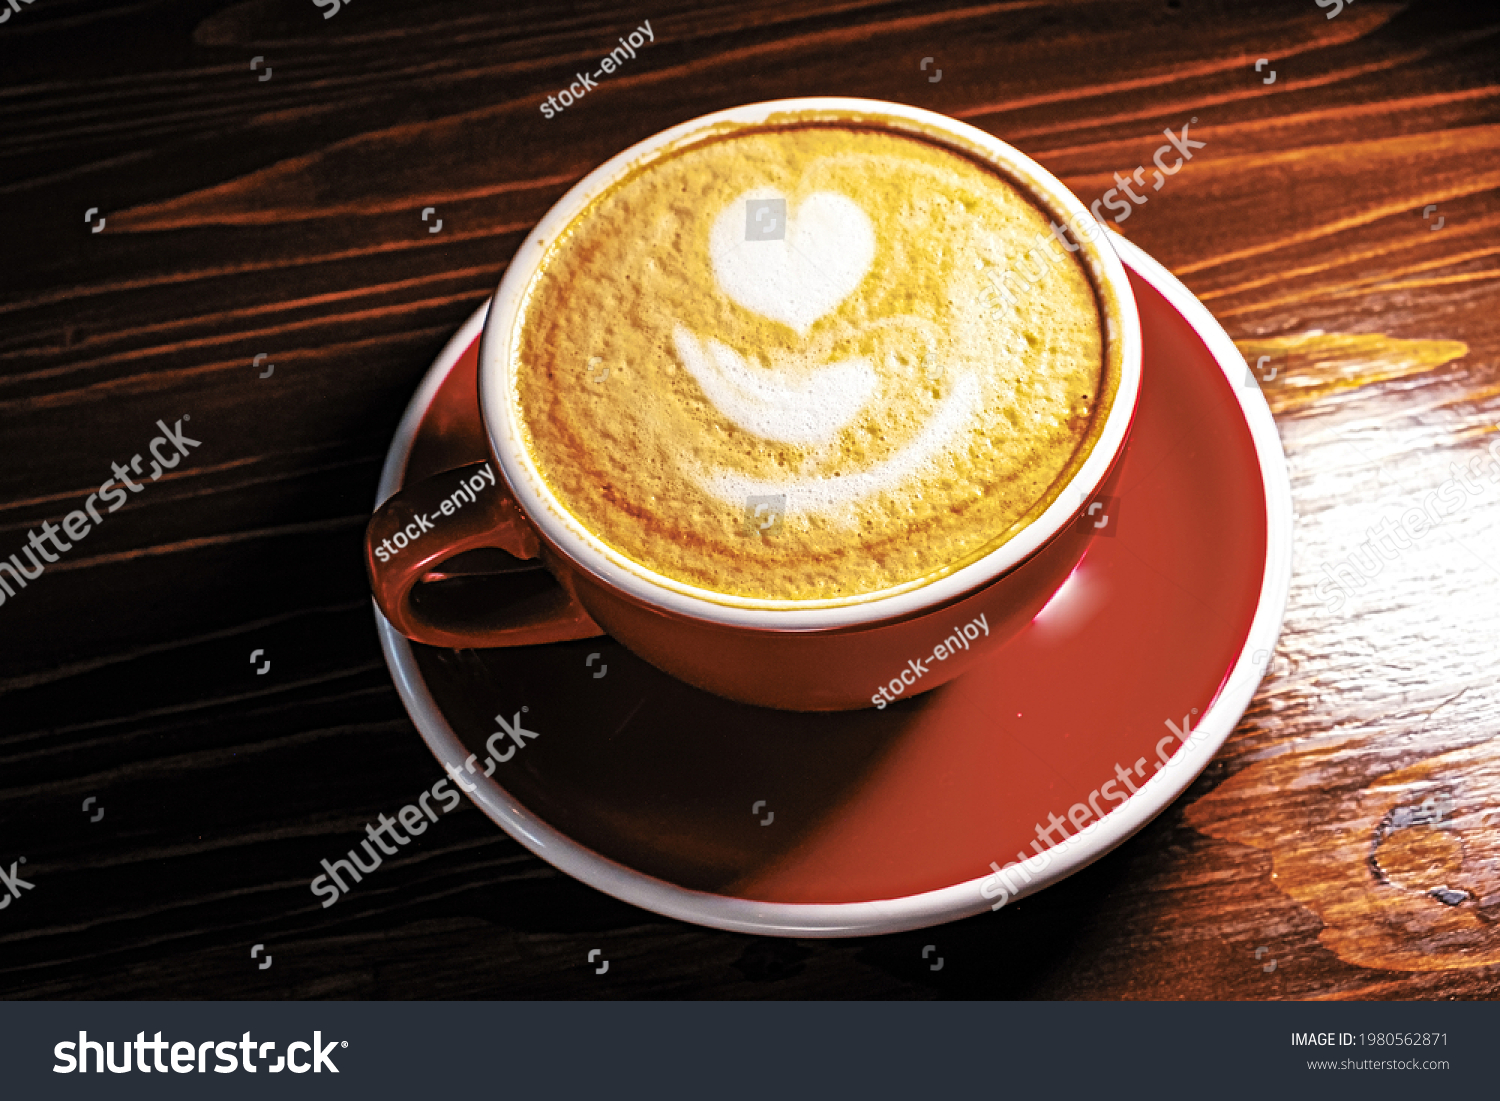 Red cup of latte coffe with froth art on top, half in dark above view on wooden desk